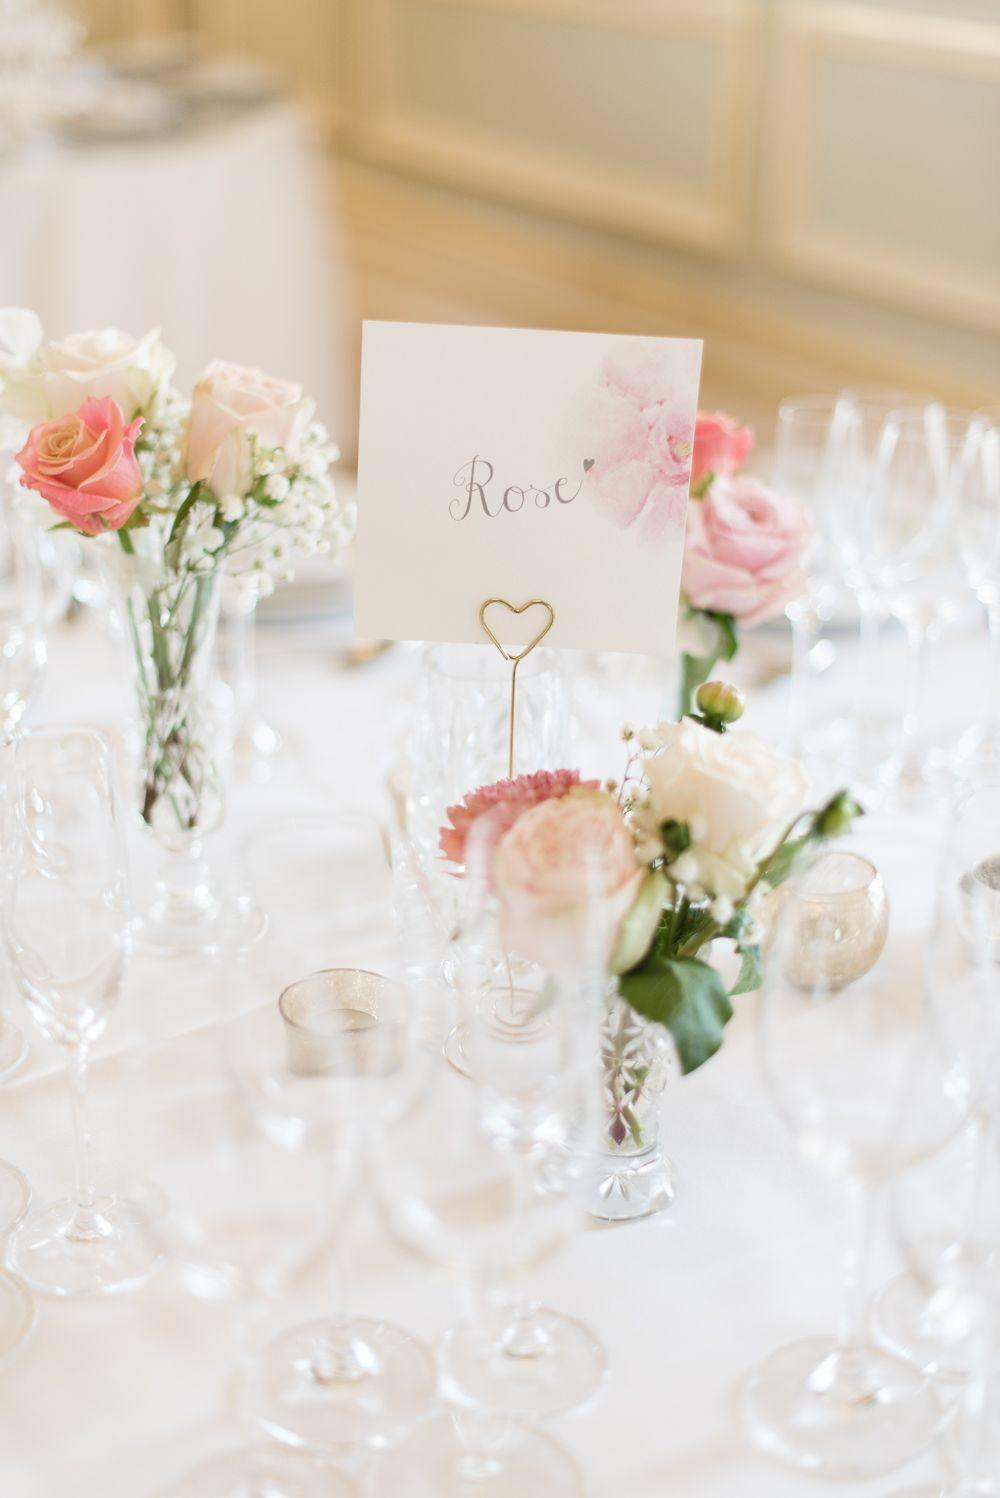 Wedding arrangements: 70 ideas for table, flowers and decoration 29